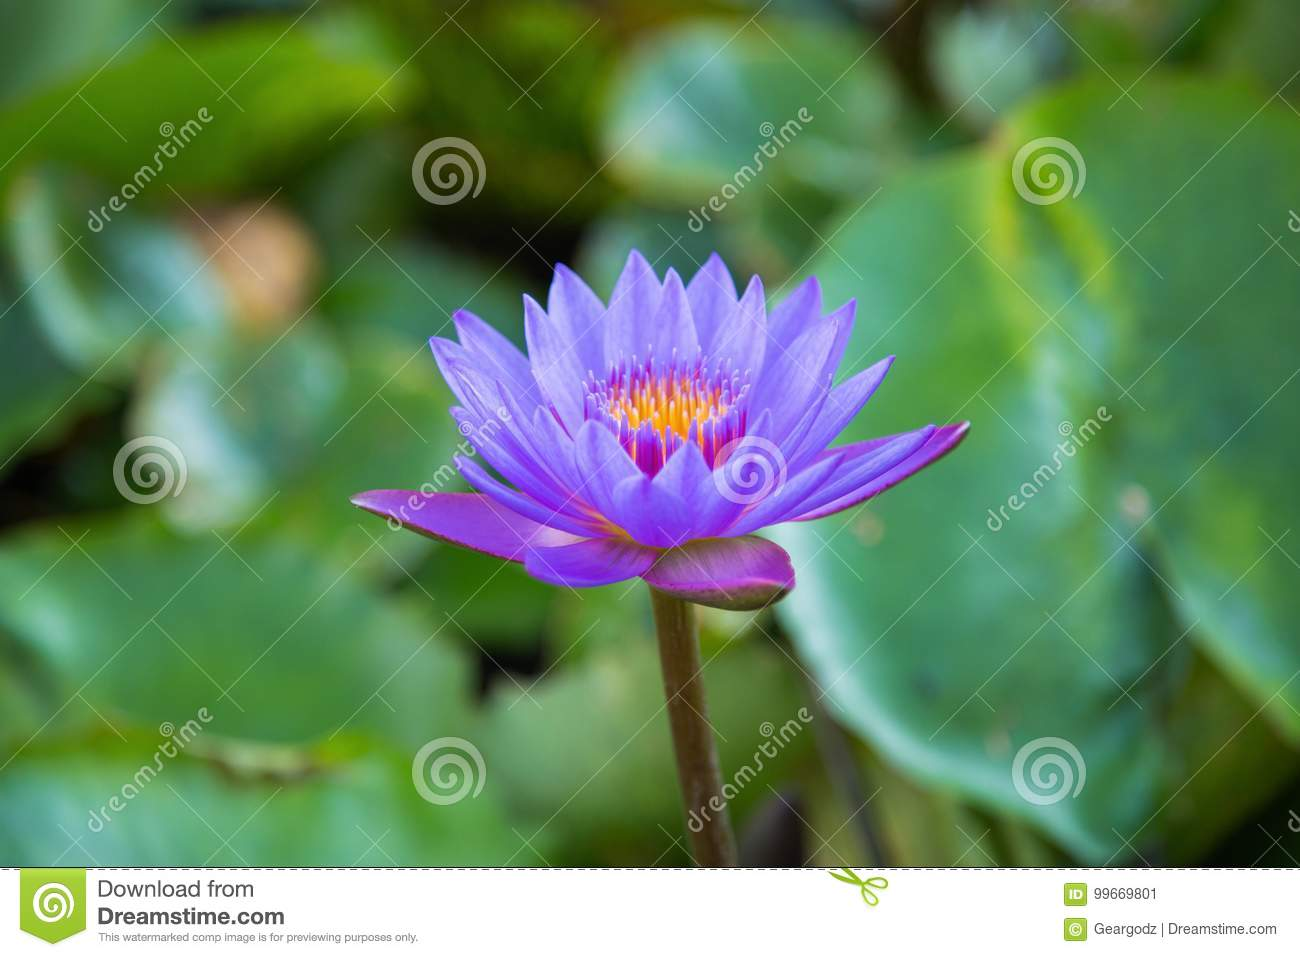 Lotus flower in pond at marina bay front singapore stock image download lotus flower in pond at marina bay front singapore stock image image of mightylinksfo